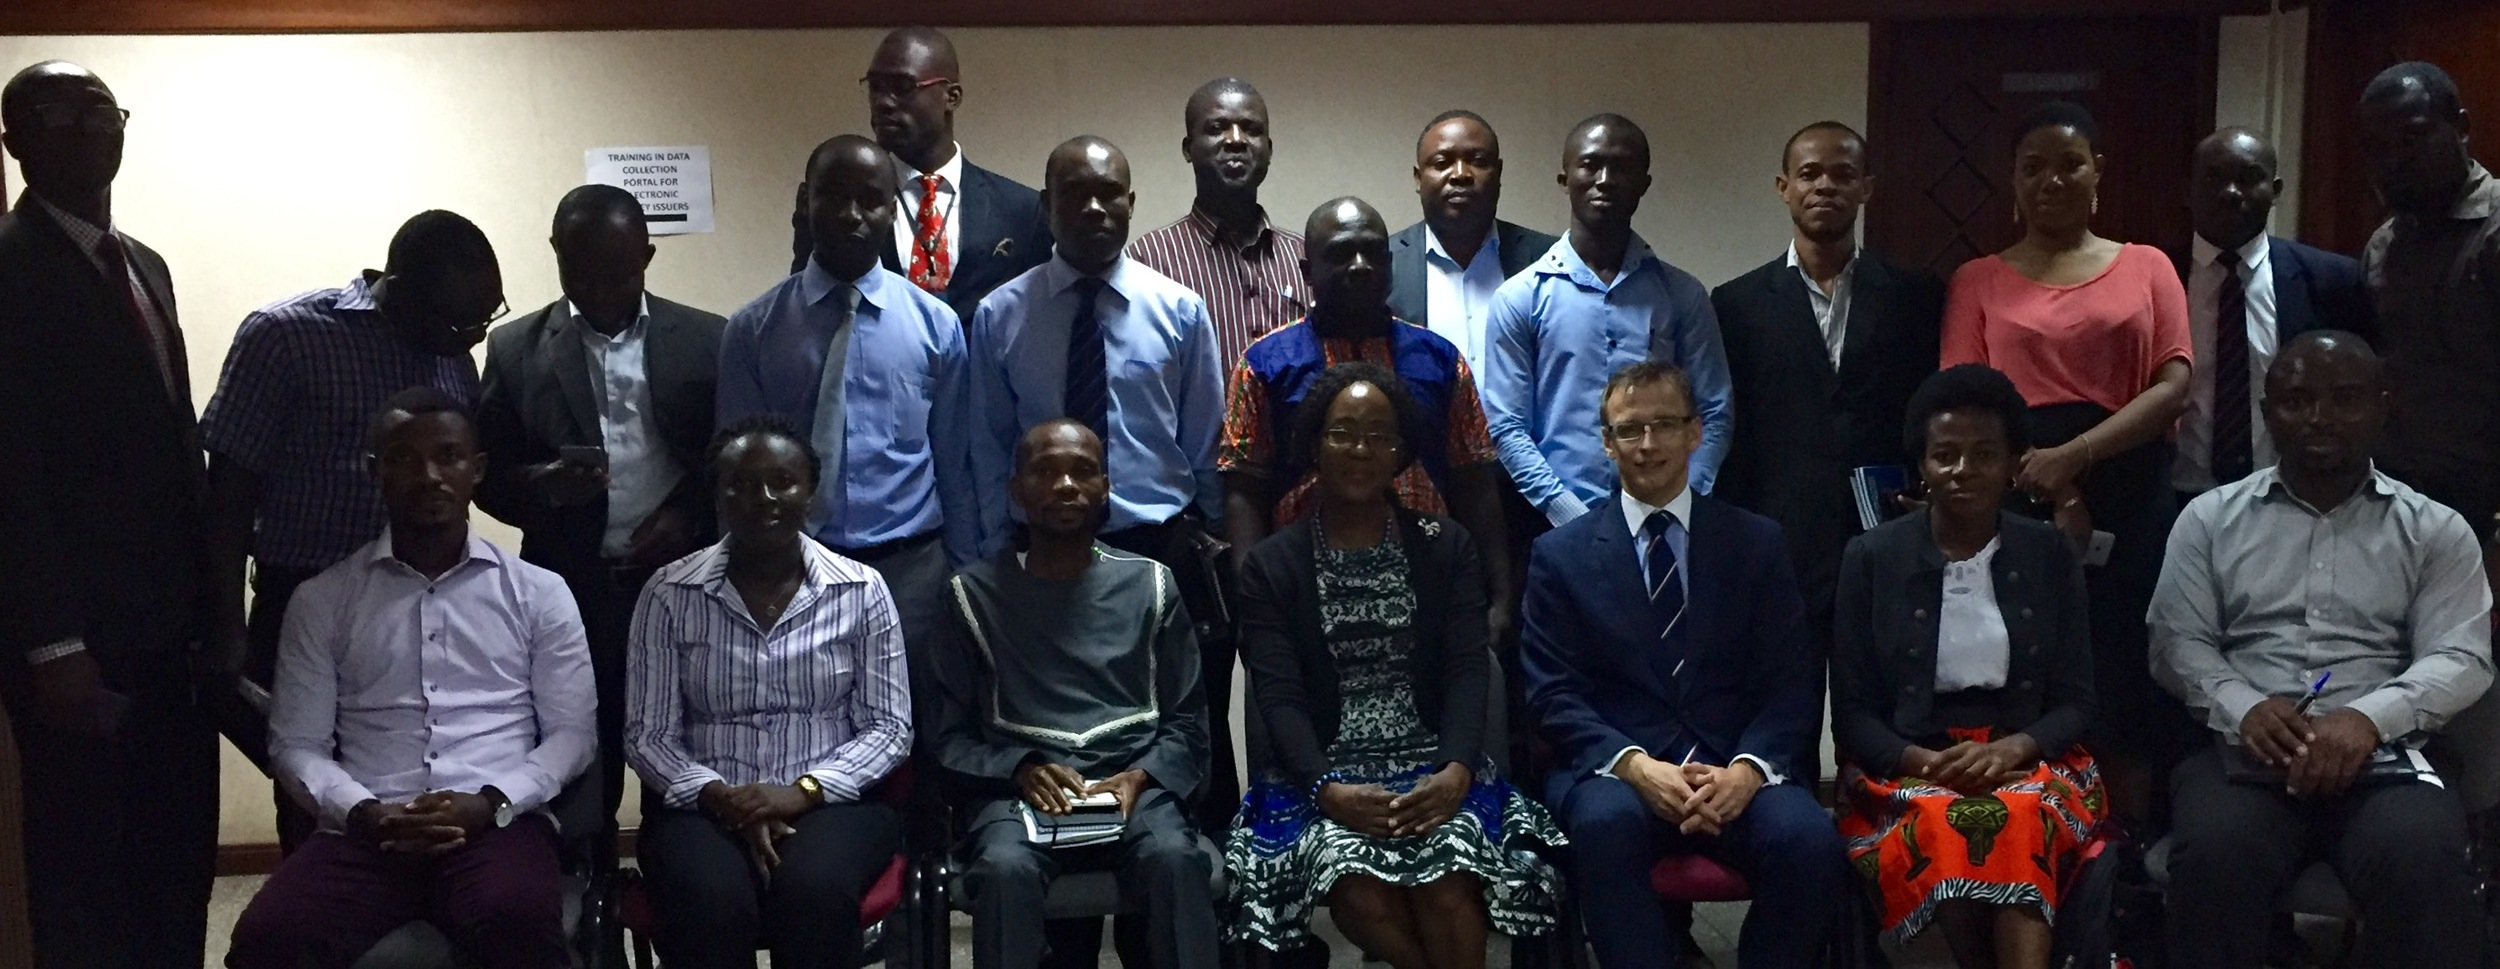 With a group of journalists in Accra, Ghana